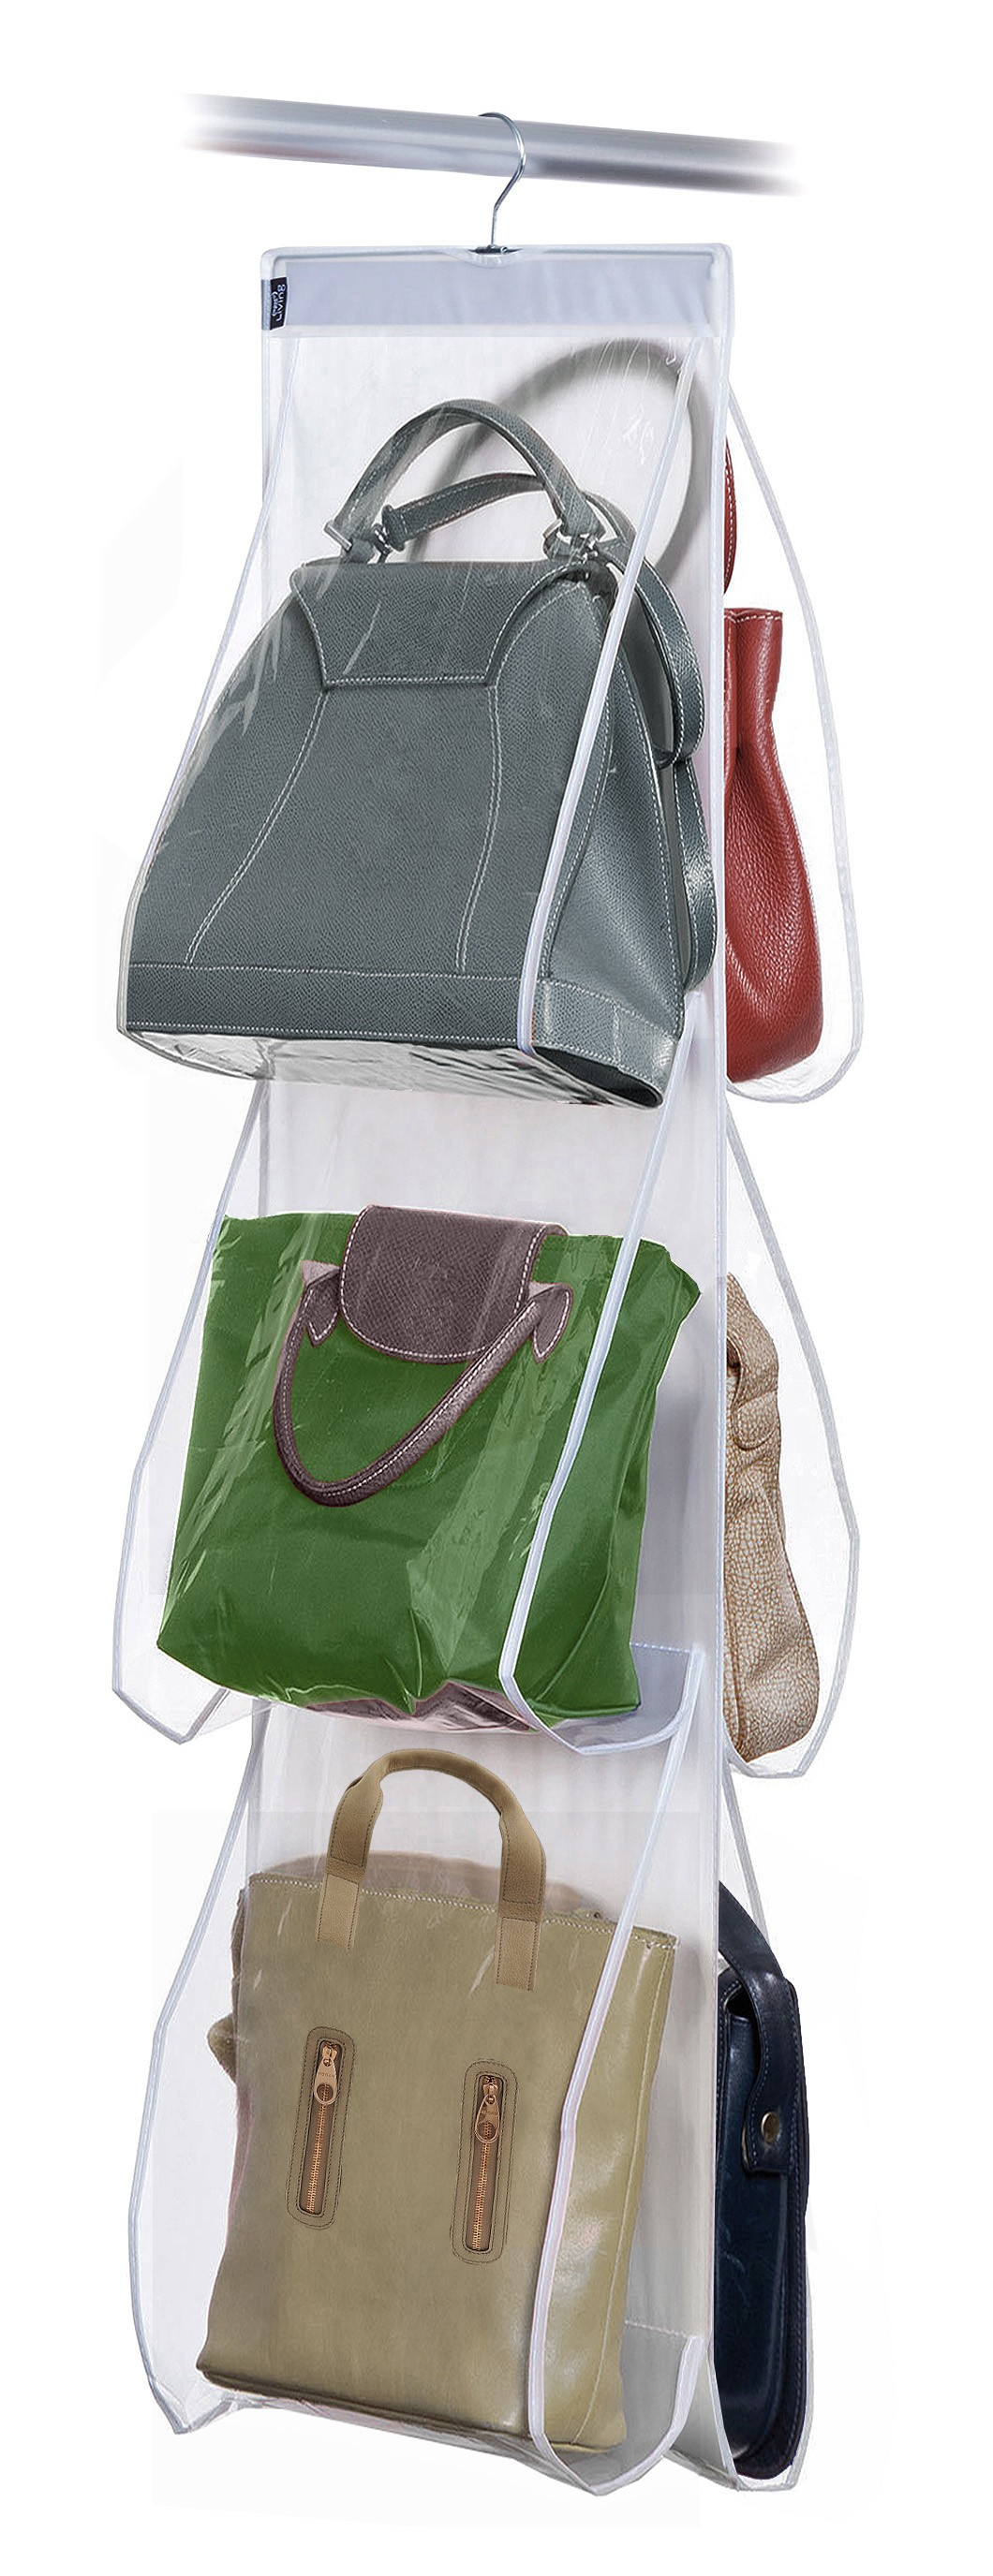 3c35a4bb88 Dk Living Hanging Handbags Organizer - 6 large pockets - Savitar Brands